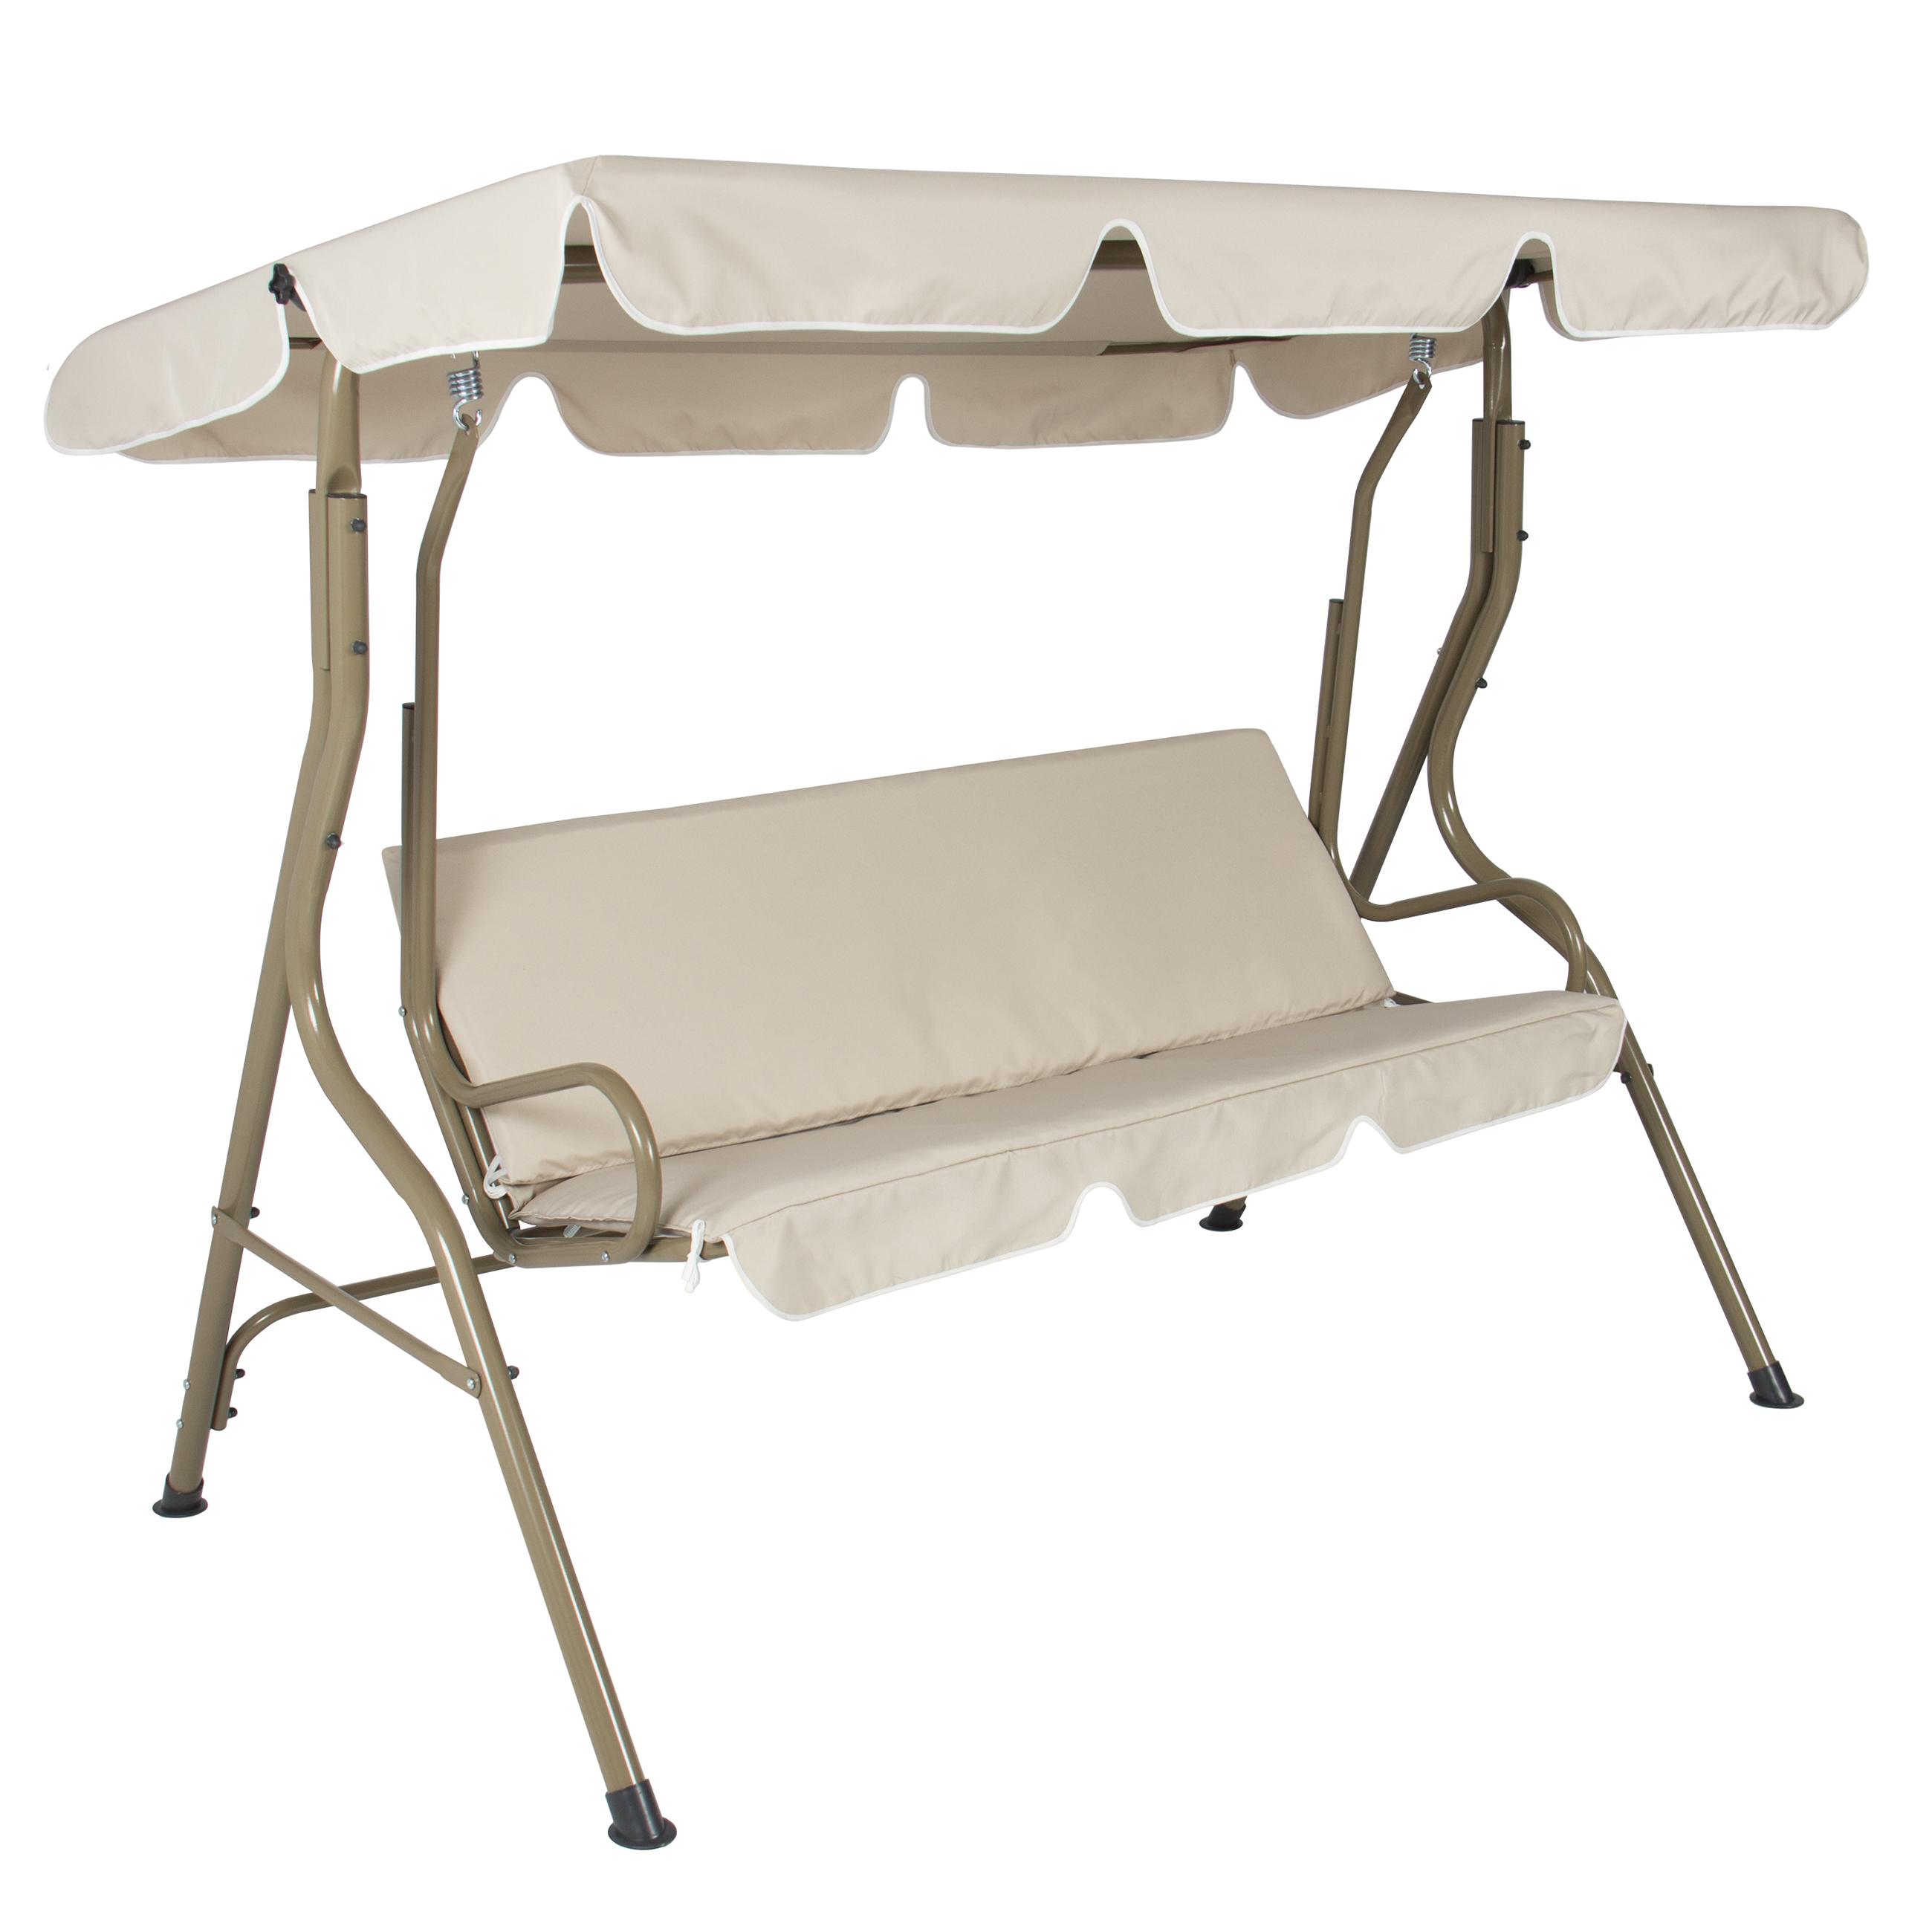 Best Choice Products 2-Person Outdoor Large Convertible Canopy Swing Glider Lounge Chair w/ Removable Cushions - Beige